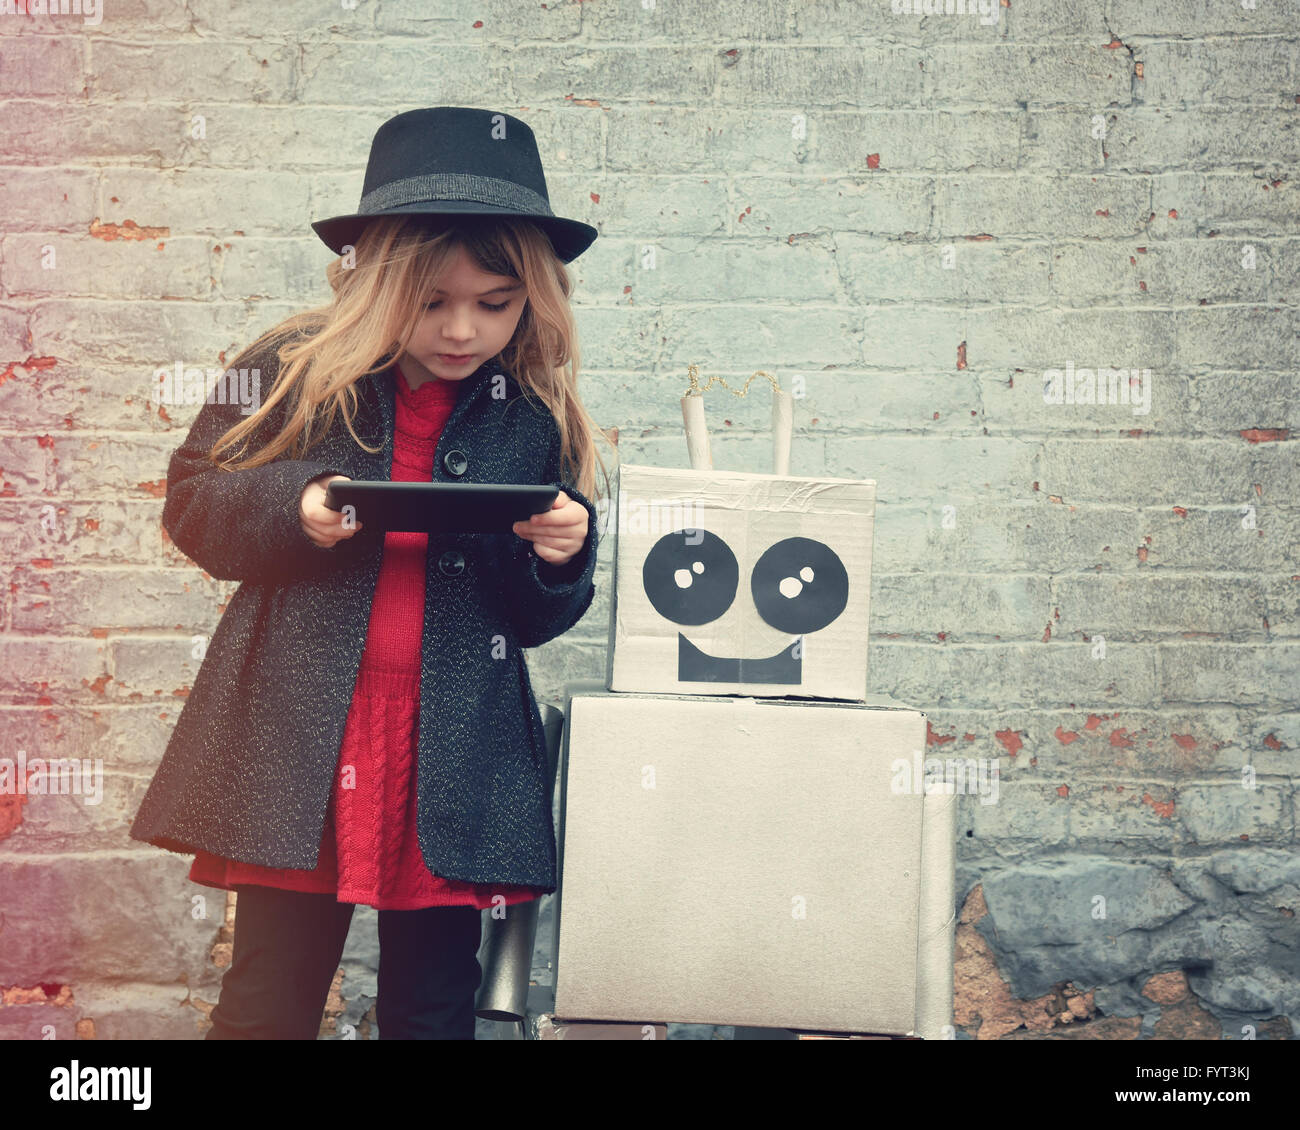 A little hipster child is wearing a hat and holding a tablet with her robot friend downtown for a happiness or technology - Stock Image